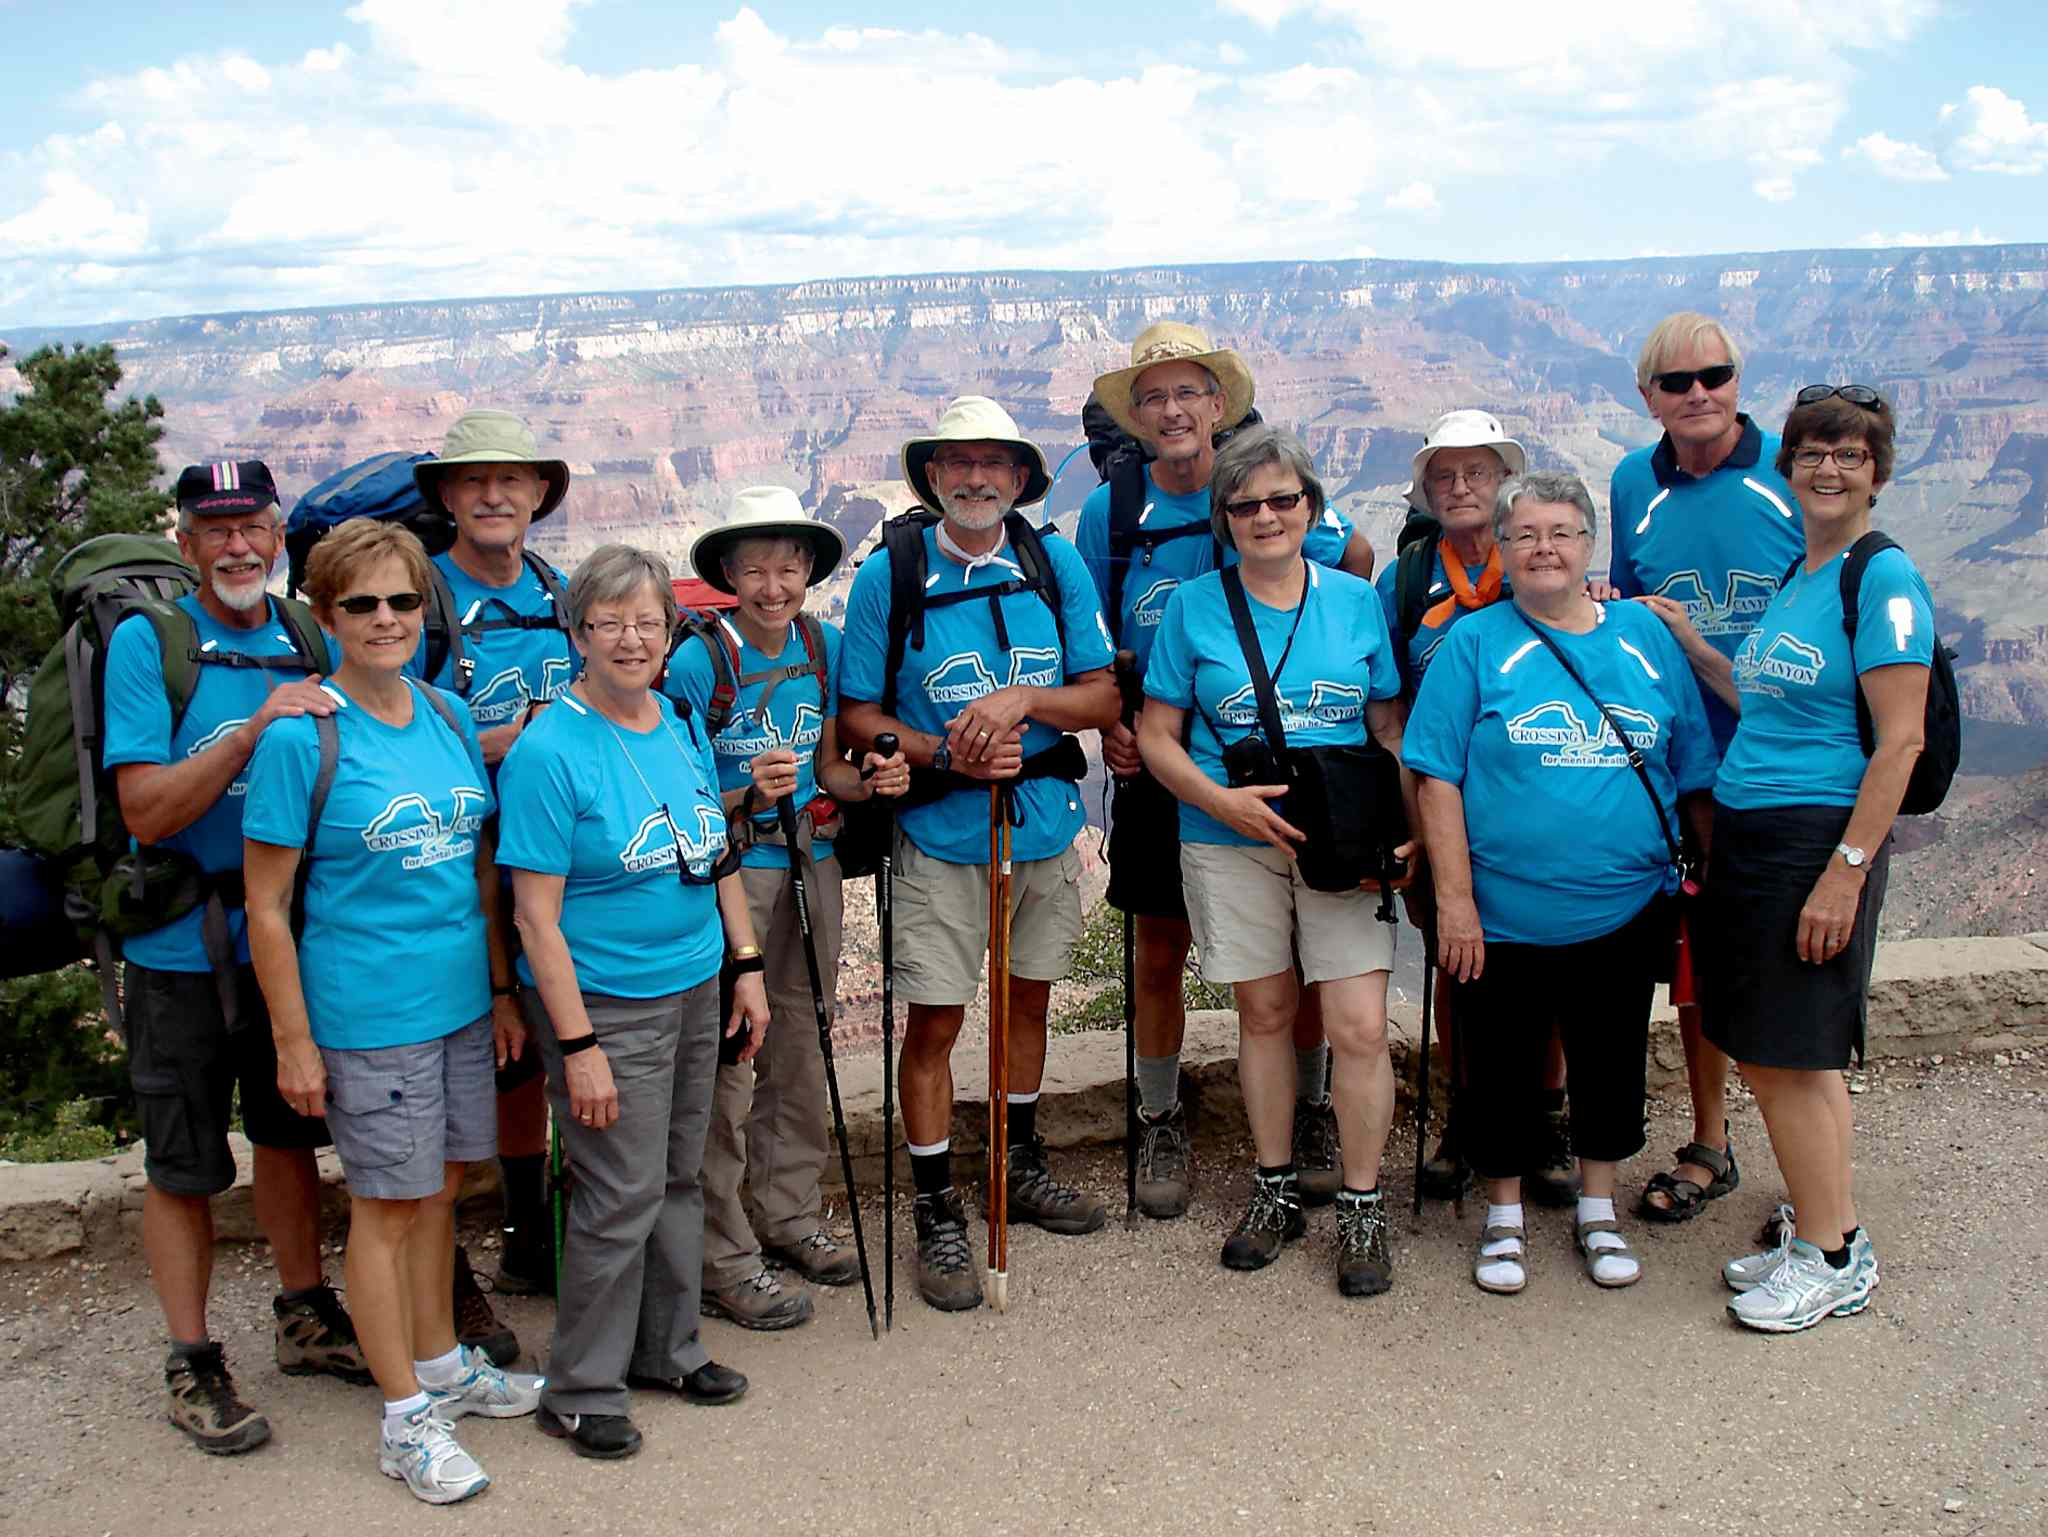 From left to right, by couples: John and Ruth Janzen, Dave and Grace Loewen, Anne and Jerry Friesen, John and Merril Unger, John and Pat Pankratz, and Bill and Grace Martens, pictured during their four-day excursion to the Grand Canyon.